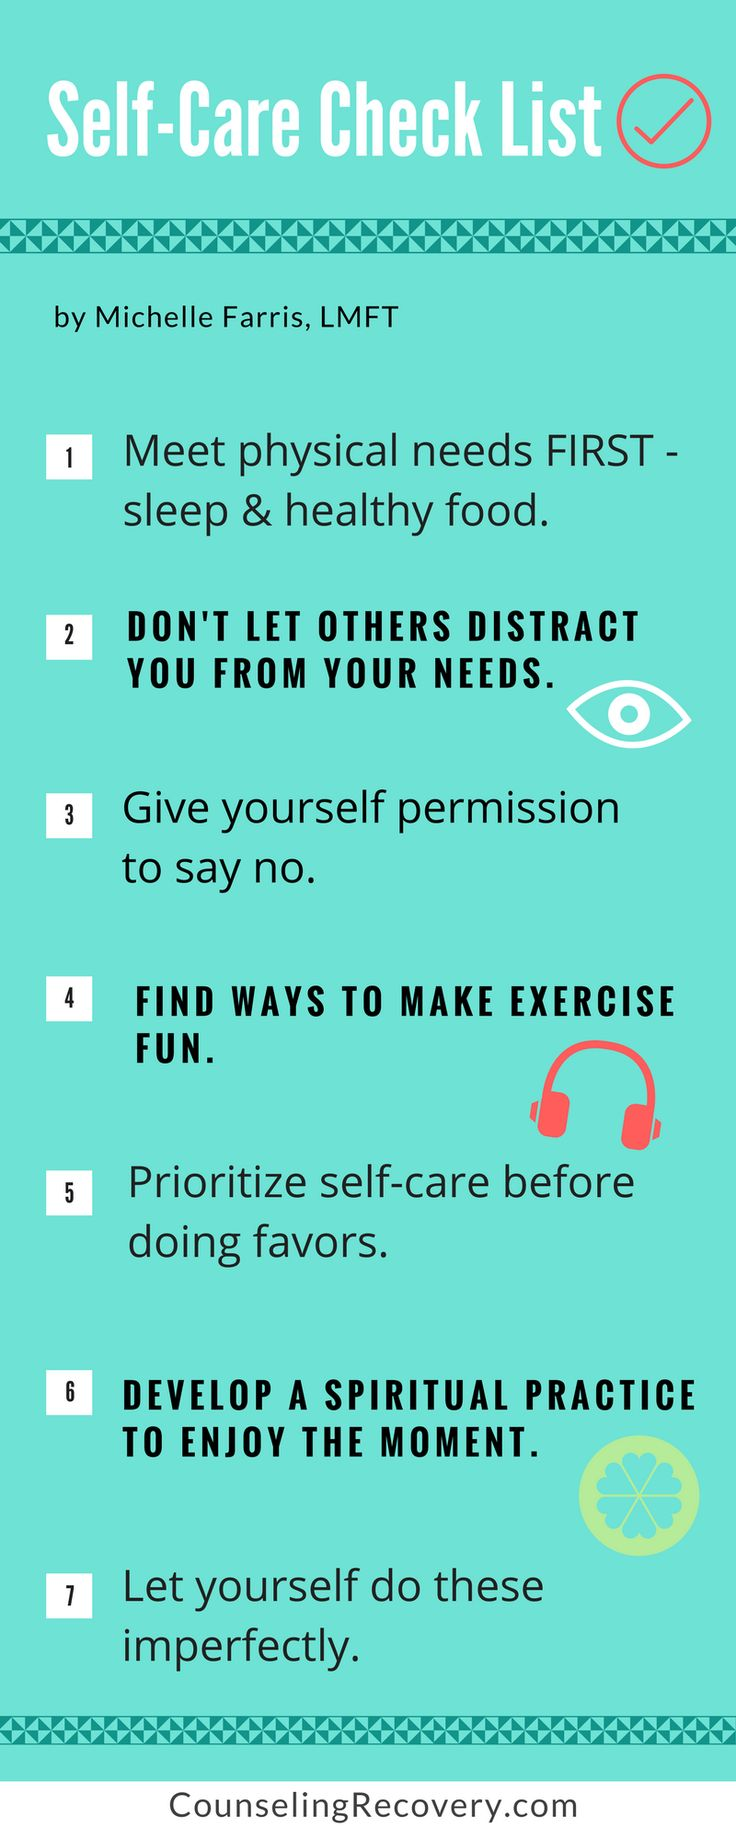 Learn how to take better care of yourself and why it's called self-care - not selfish! If you struggle with codependency, self-care is a challenge. To read more click the image.